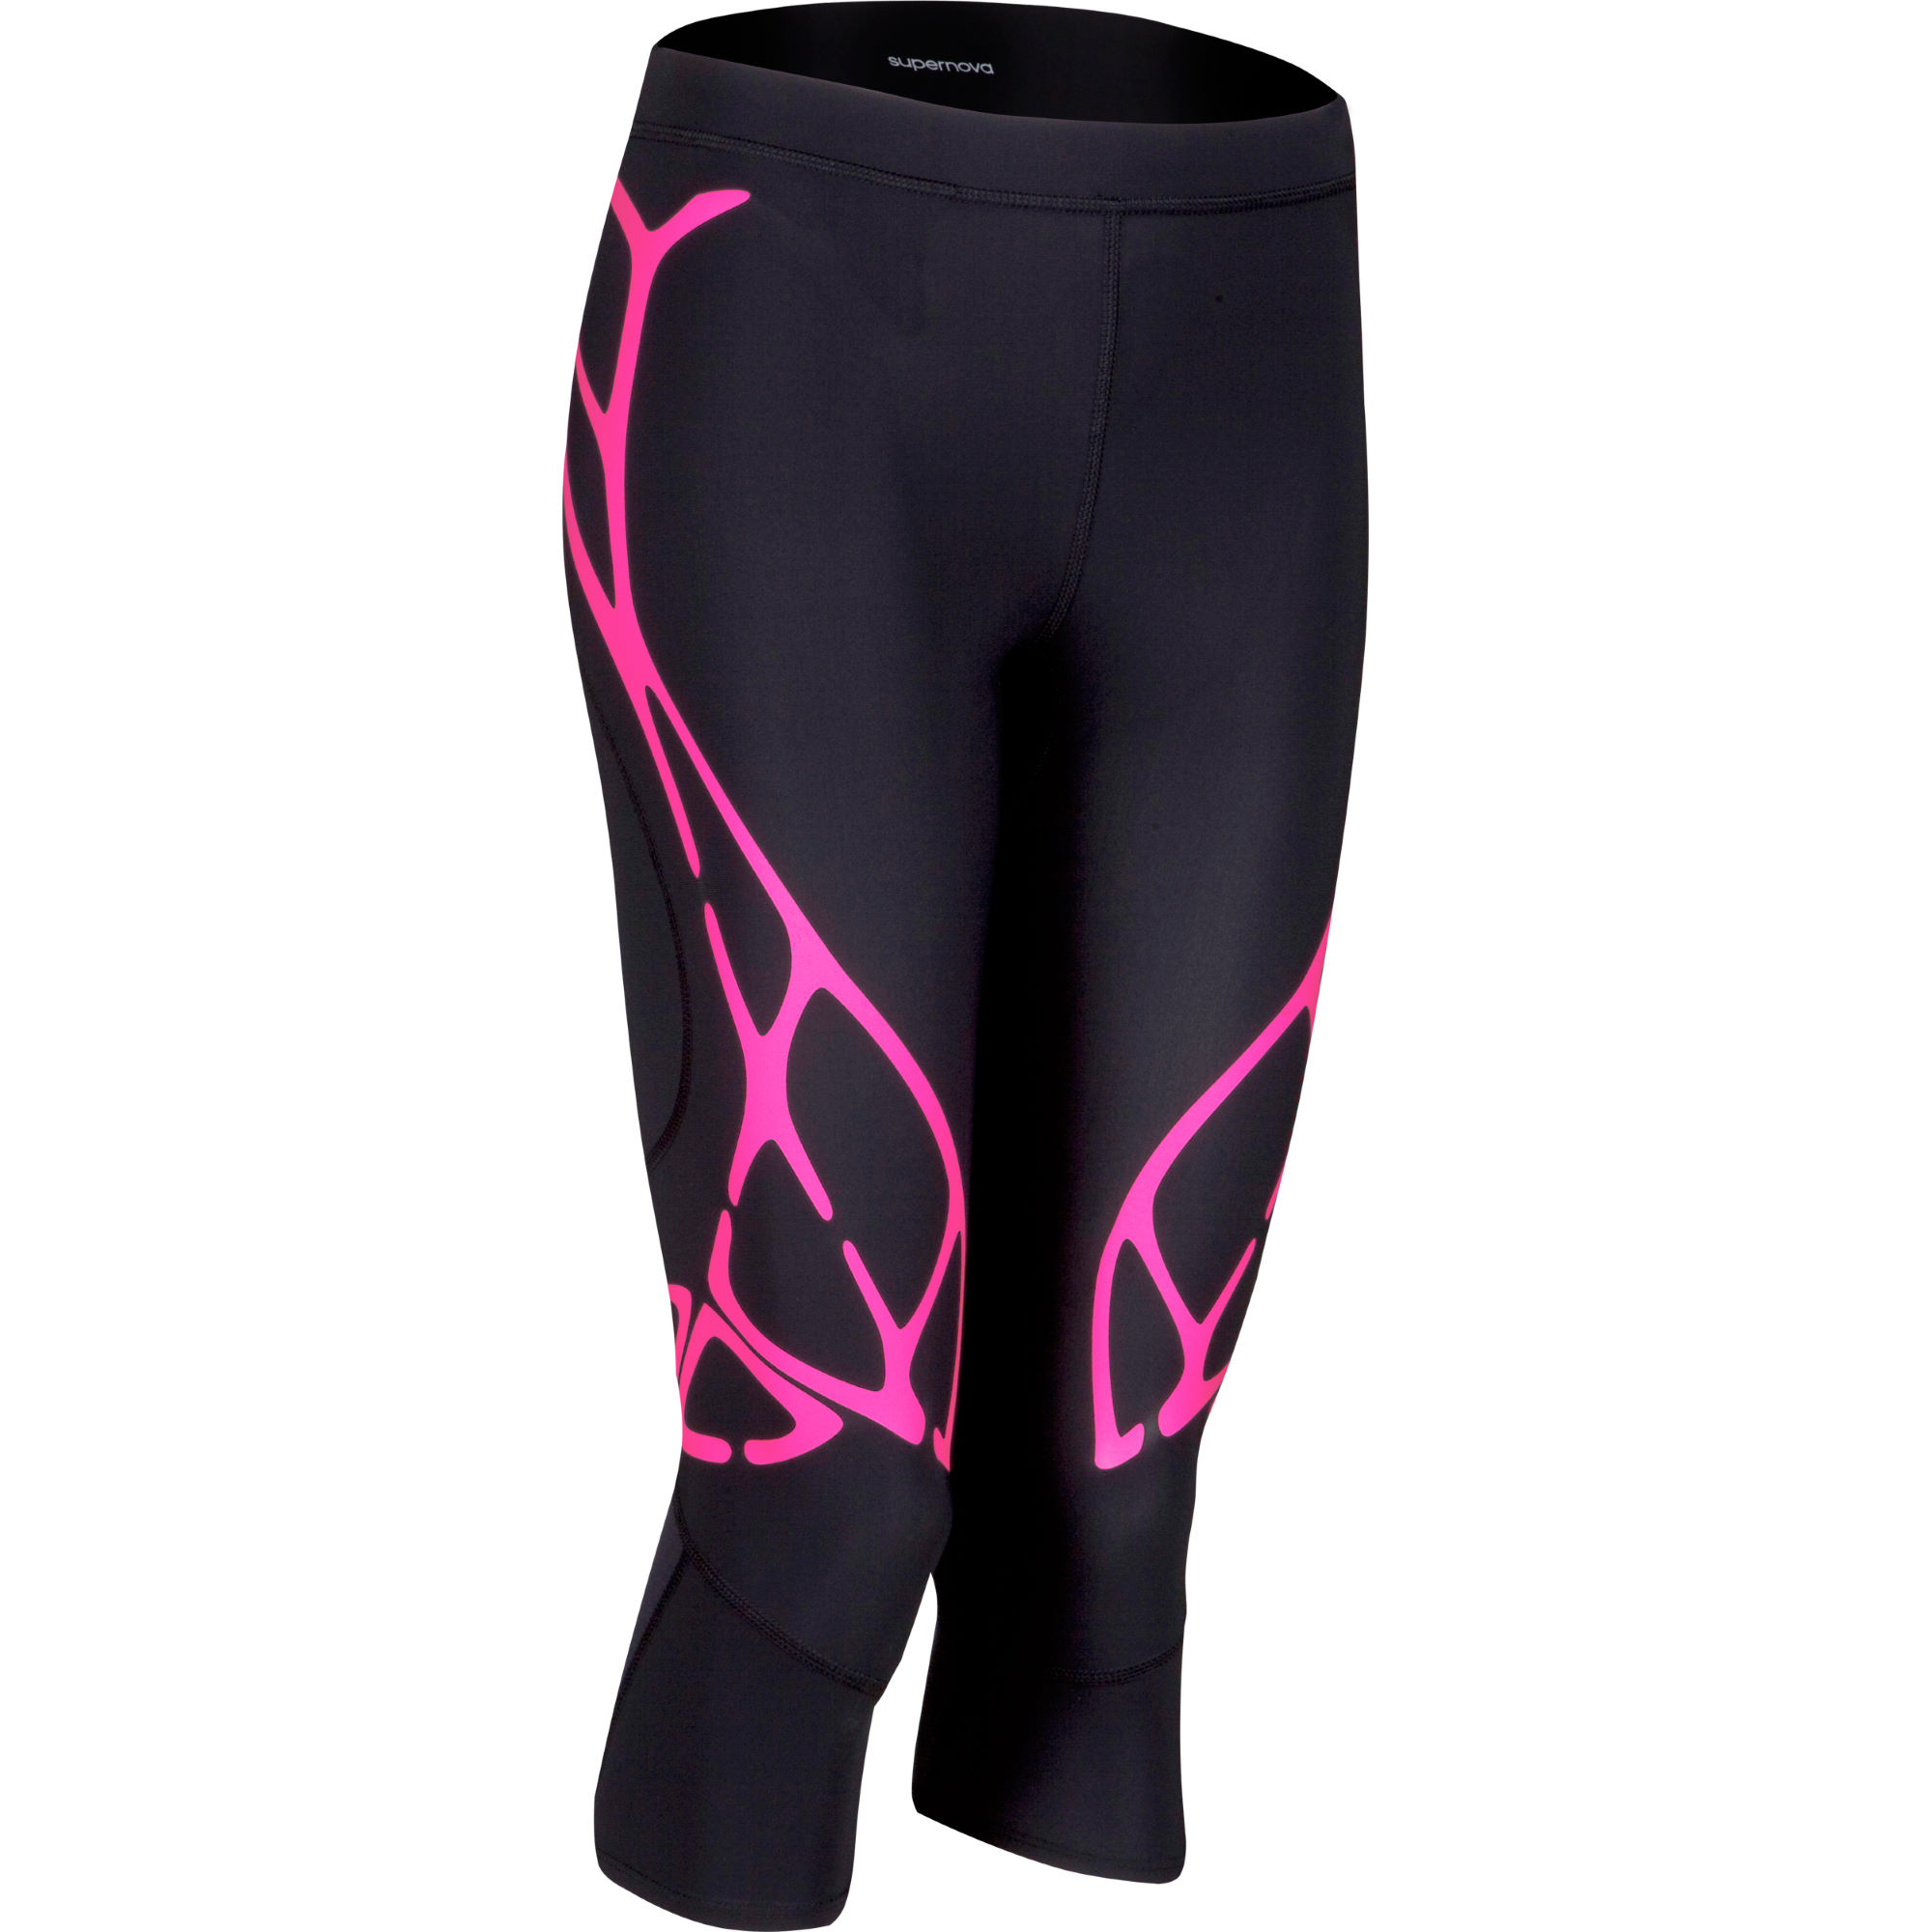 Form-flattering and performance-boosting – the right pair of leggings can make a look. Amp up your gym routine with graphic-print styles from adidas, Nike and Pink Soda Sport, or take it from studio to street in the latest from Beyoncé's IVY PARK.